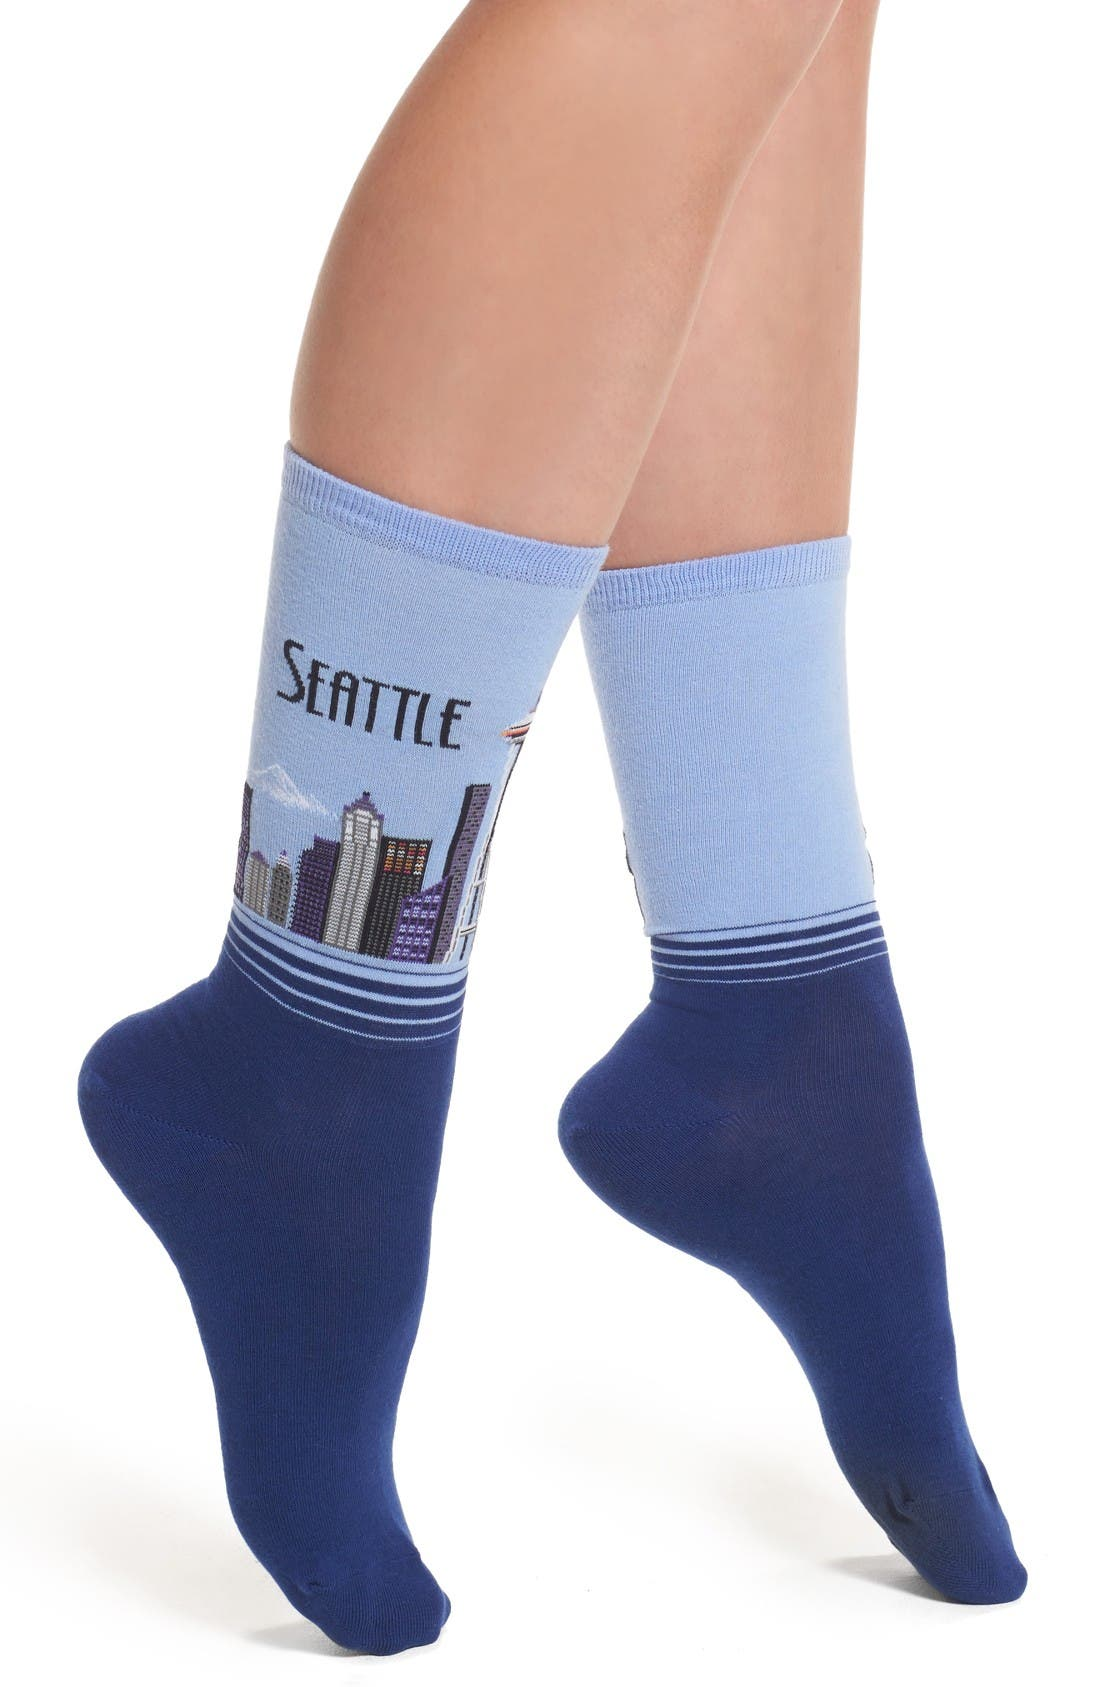 Hot Sox Seattle Socks (3 for $15)